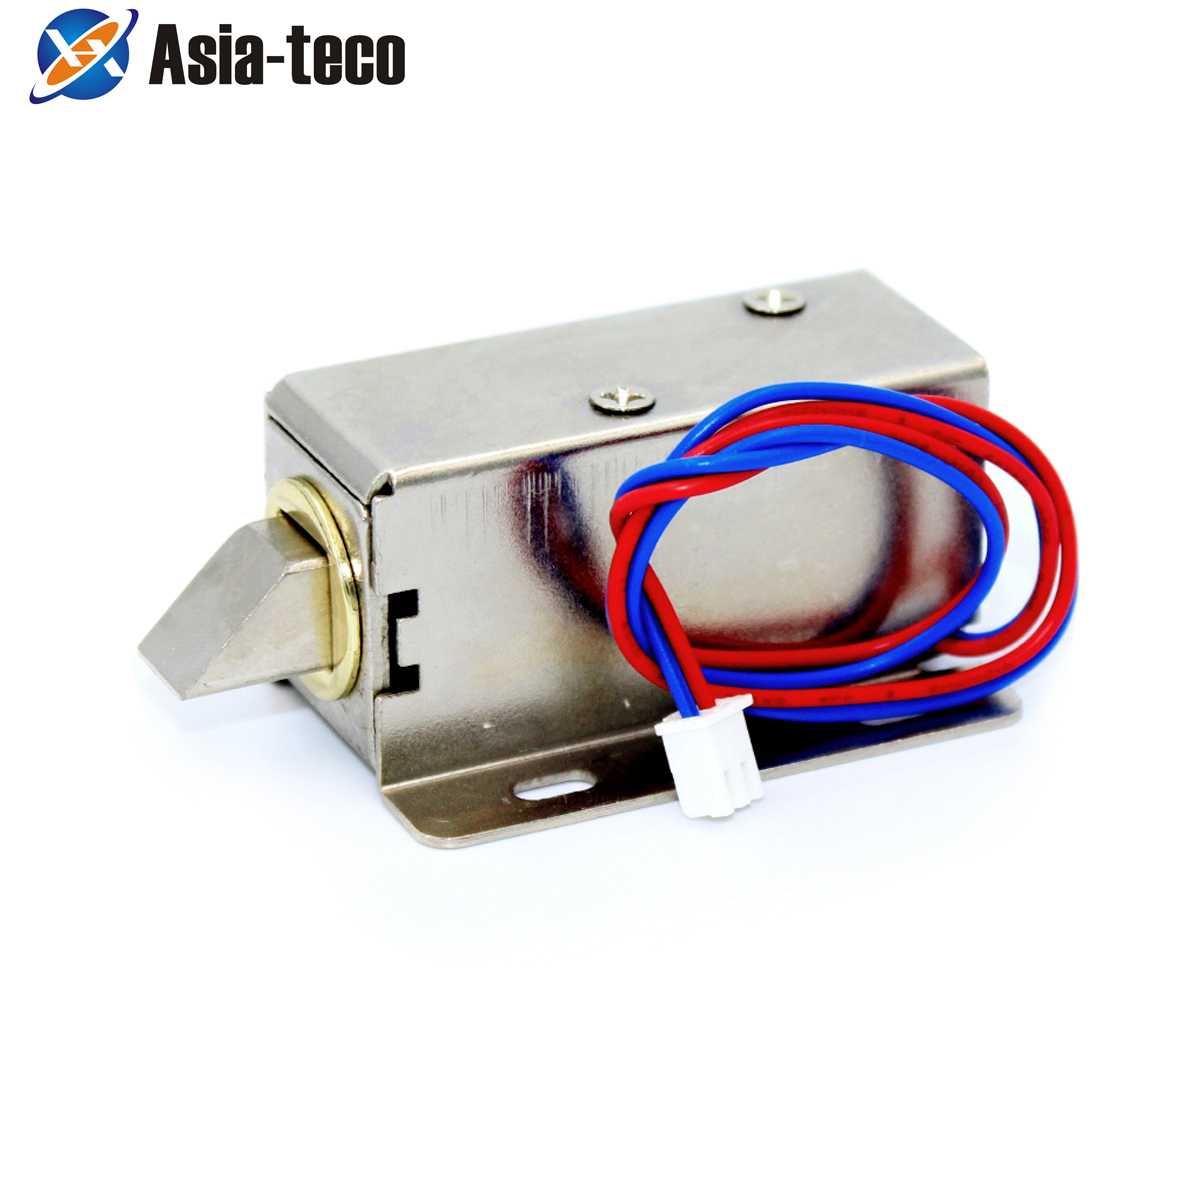 Electronic Door Lock Catch Door Gate 12V 0.4A Release Assembly Solenoid Access Control Lock 1 Order